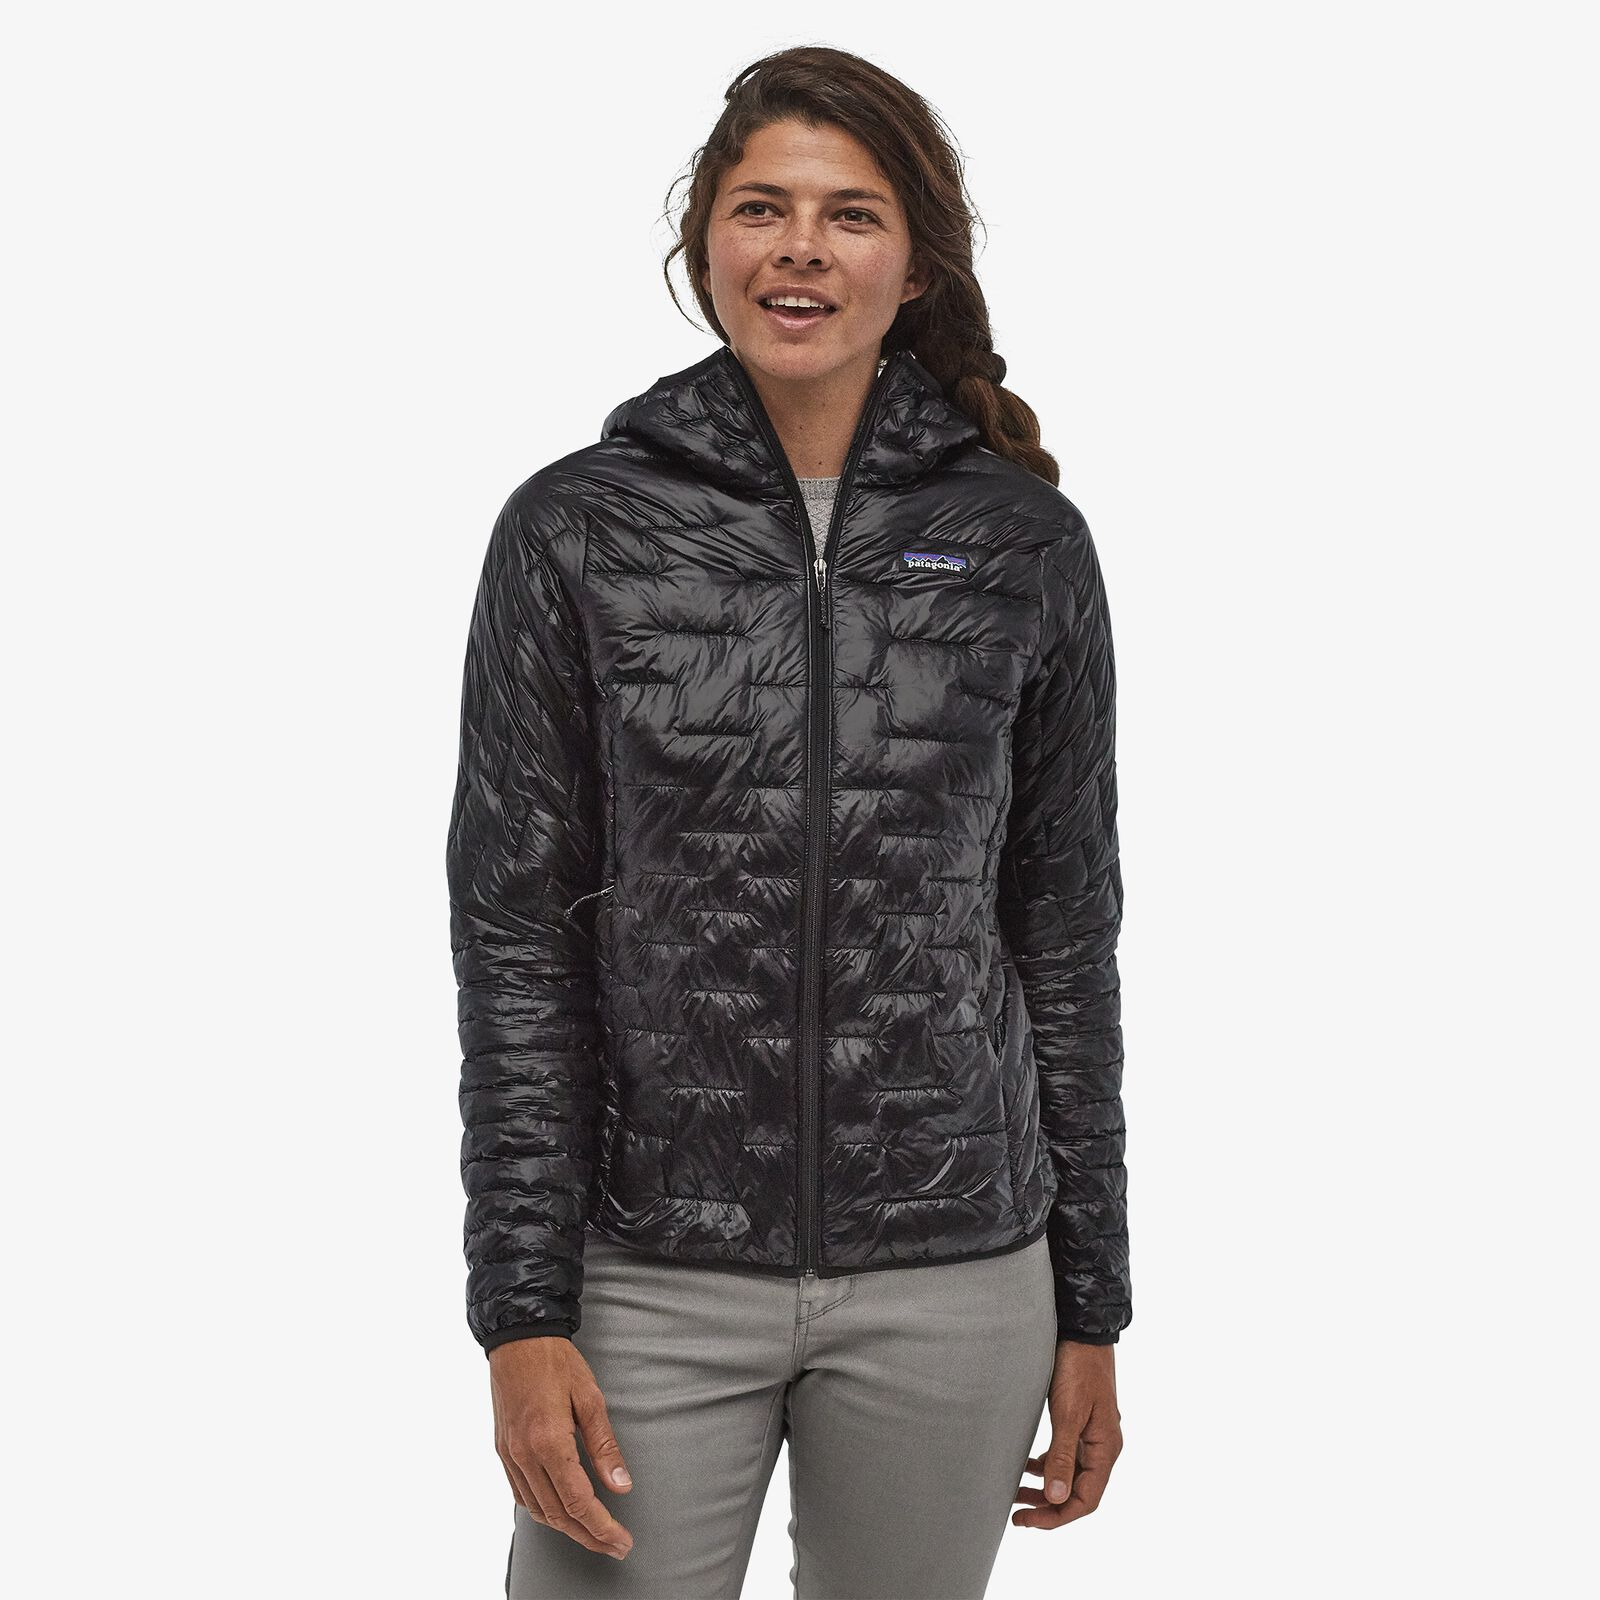 Patagonia - W's Micro Puff Hoody - Recycled Polyester - Weekendbee - sustainable sportswear